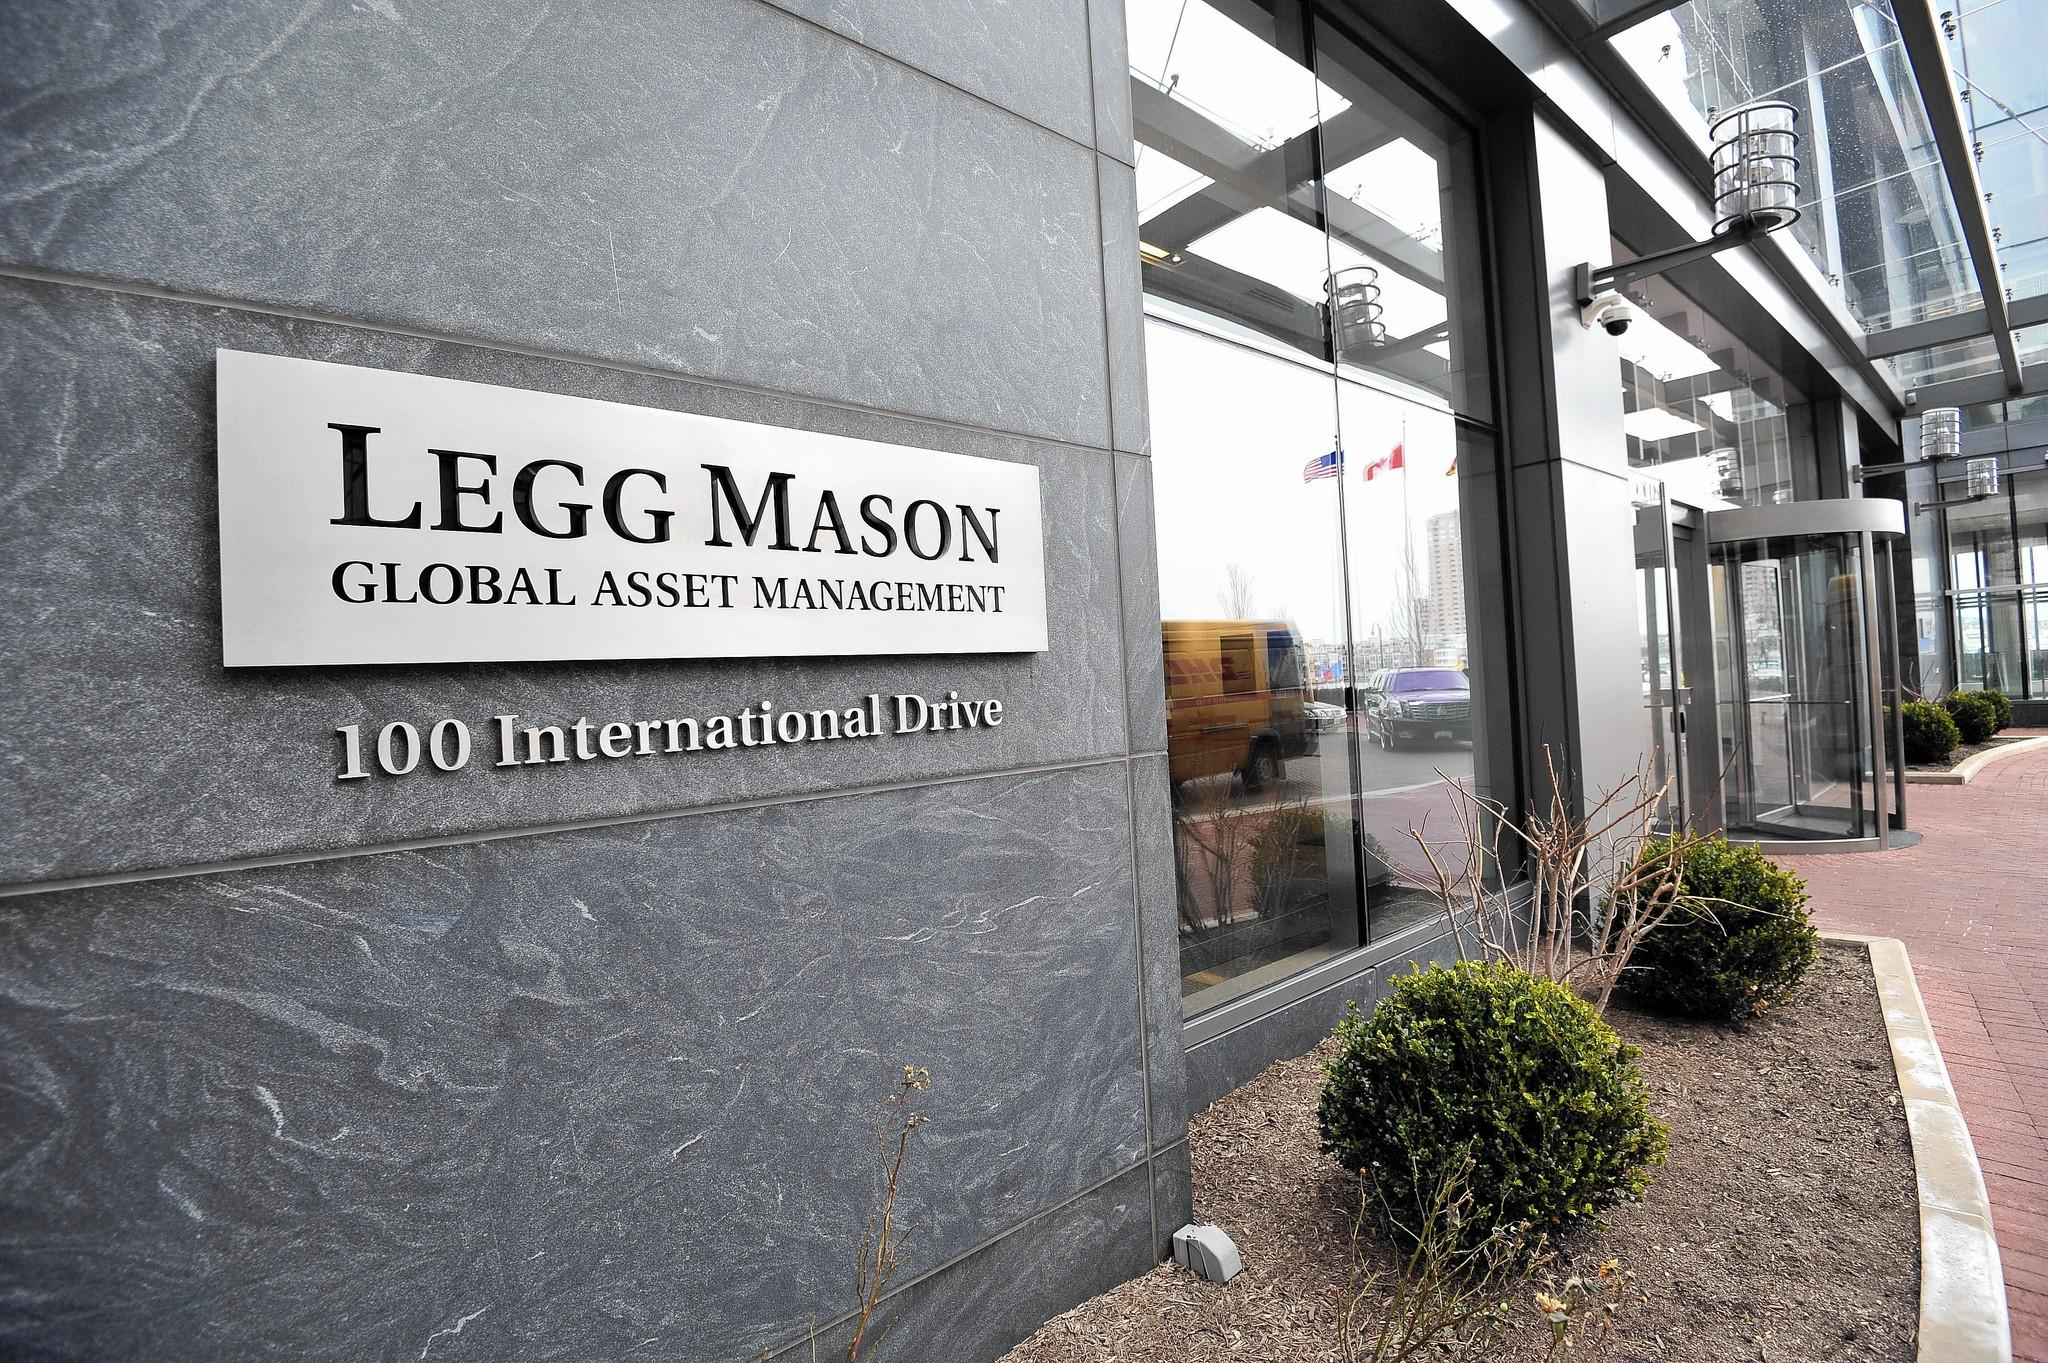 Legg Mason headquarters at 100 International Drive in Harbor East.